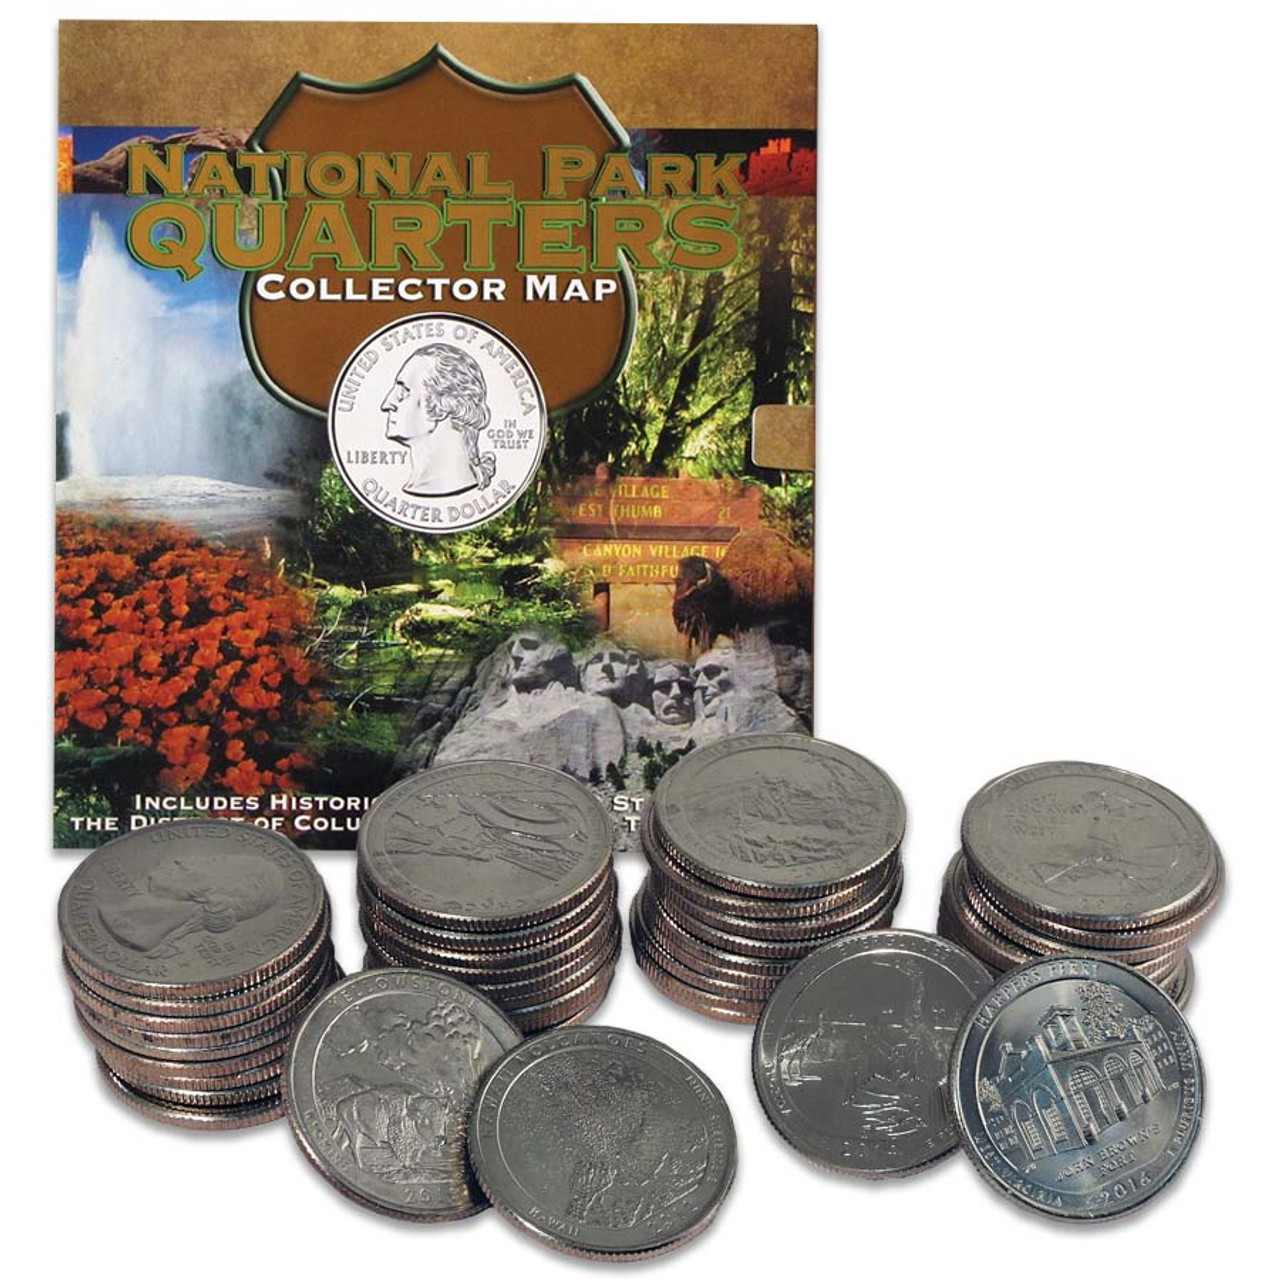 National Park Quarters Collector Map with 2010-2019 Quarters